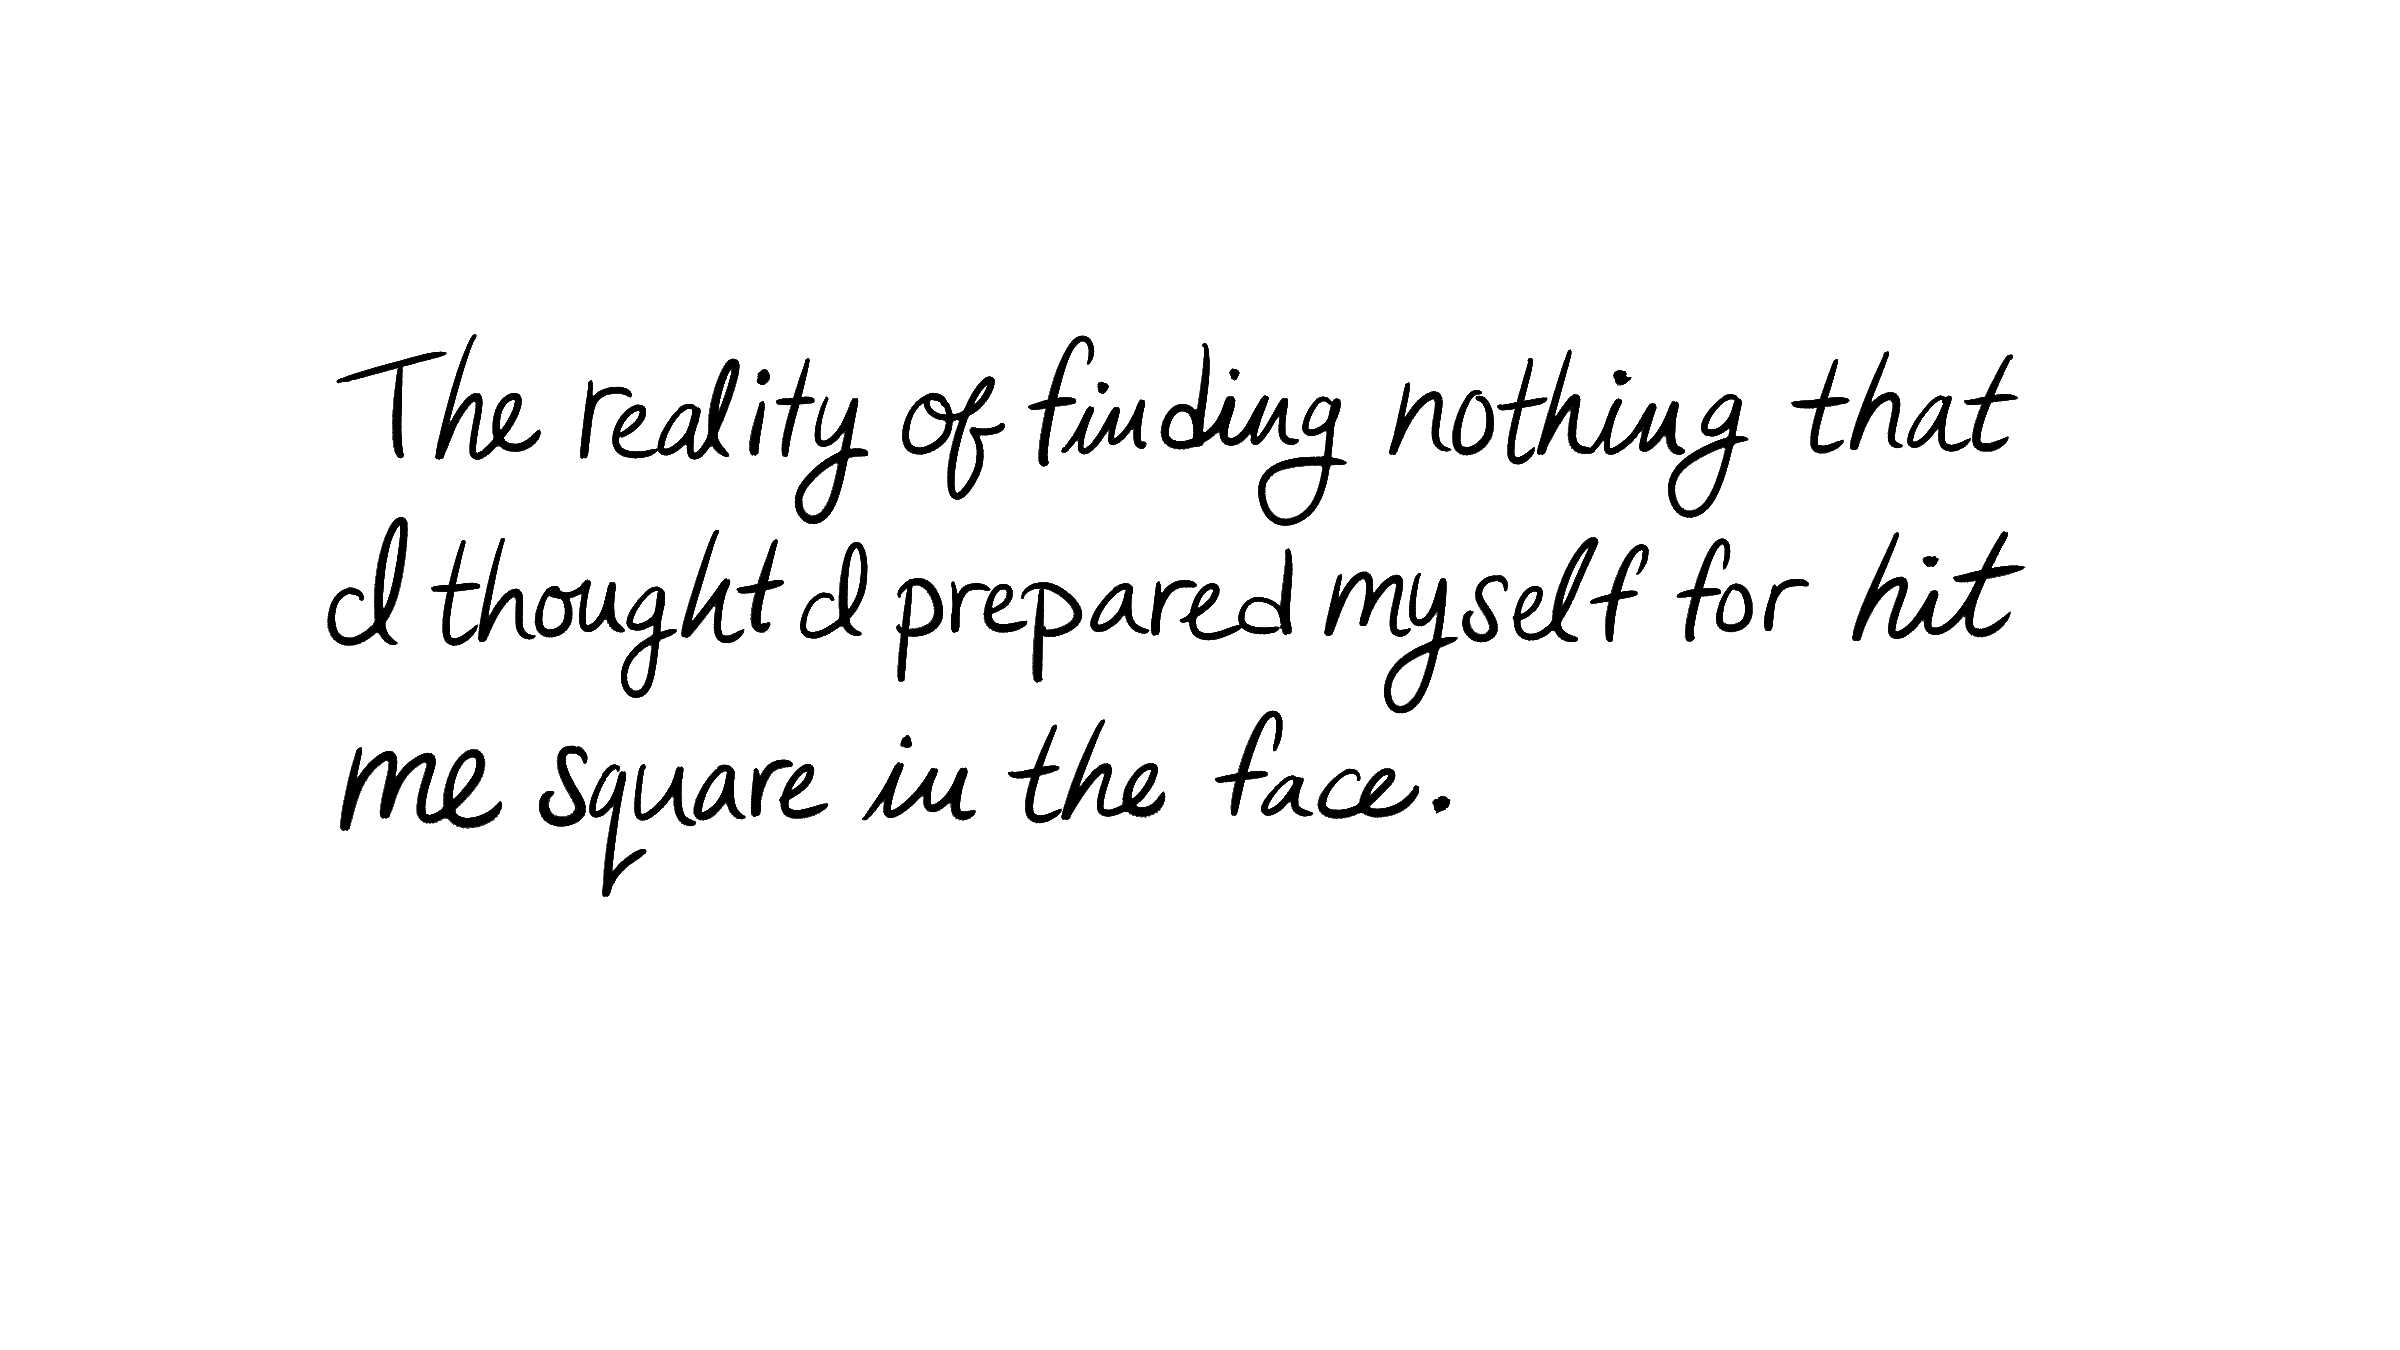 The reality of finding nothing that I thought I prepared myself for hit me square in the face.